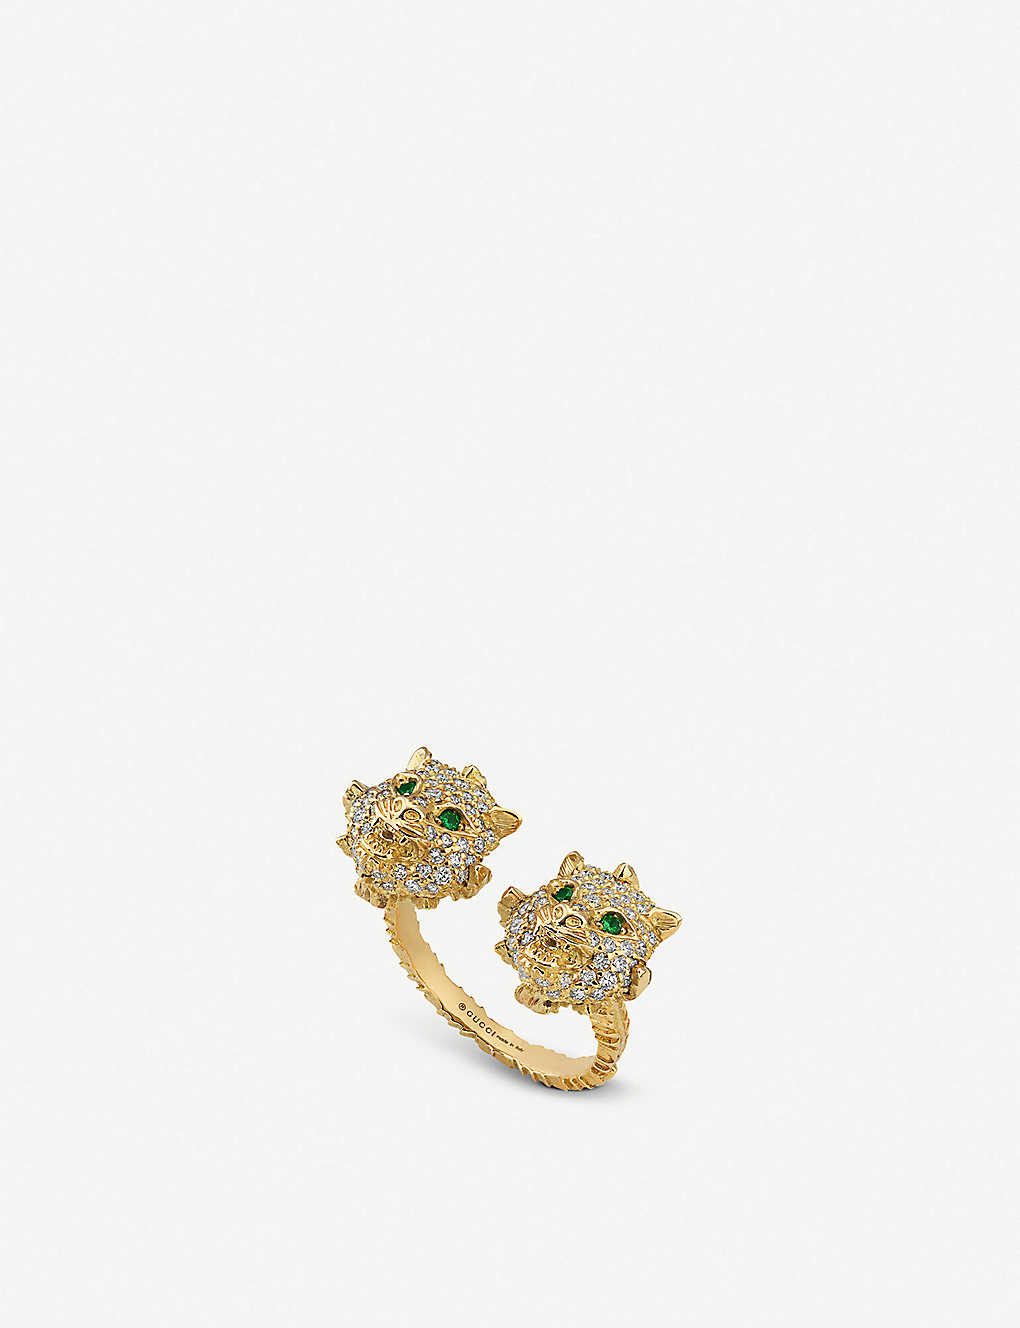 GUCCI: Le March? des Merveilles 18ct yellow-gold, tsavorite and diamond ring